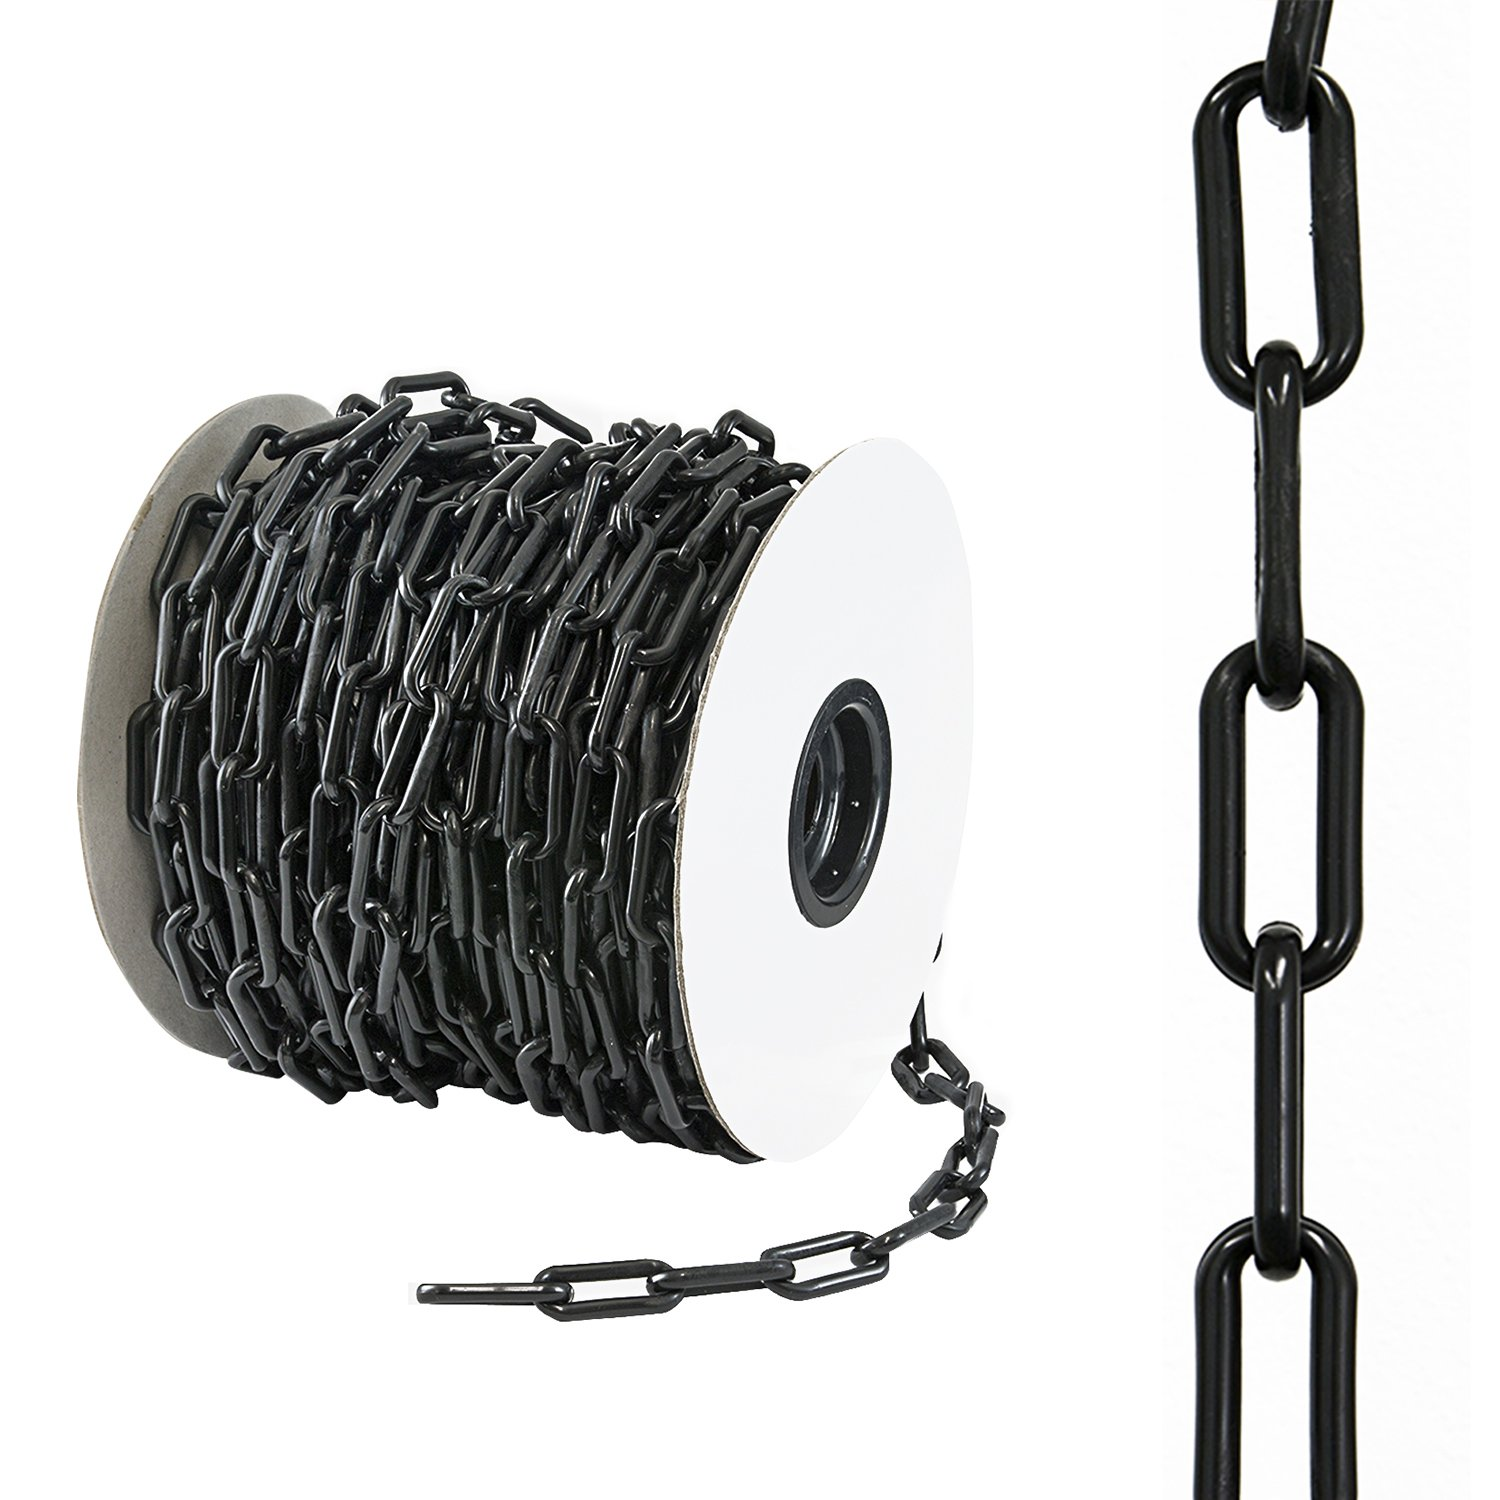 Houseables Plastic Chain, Safety Barrier, 125 Foot, 2'' Links, Light Weight, UV Protected, Accessory for Crowd Control, Queue Line, Halloween Costume, Decoration, Chains Link Fence (Black)